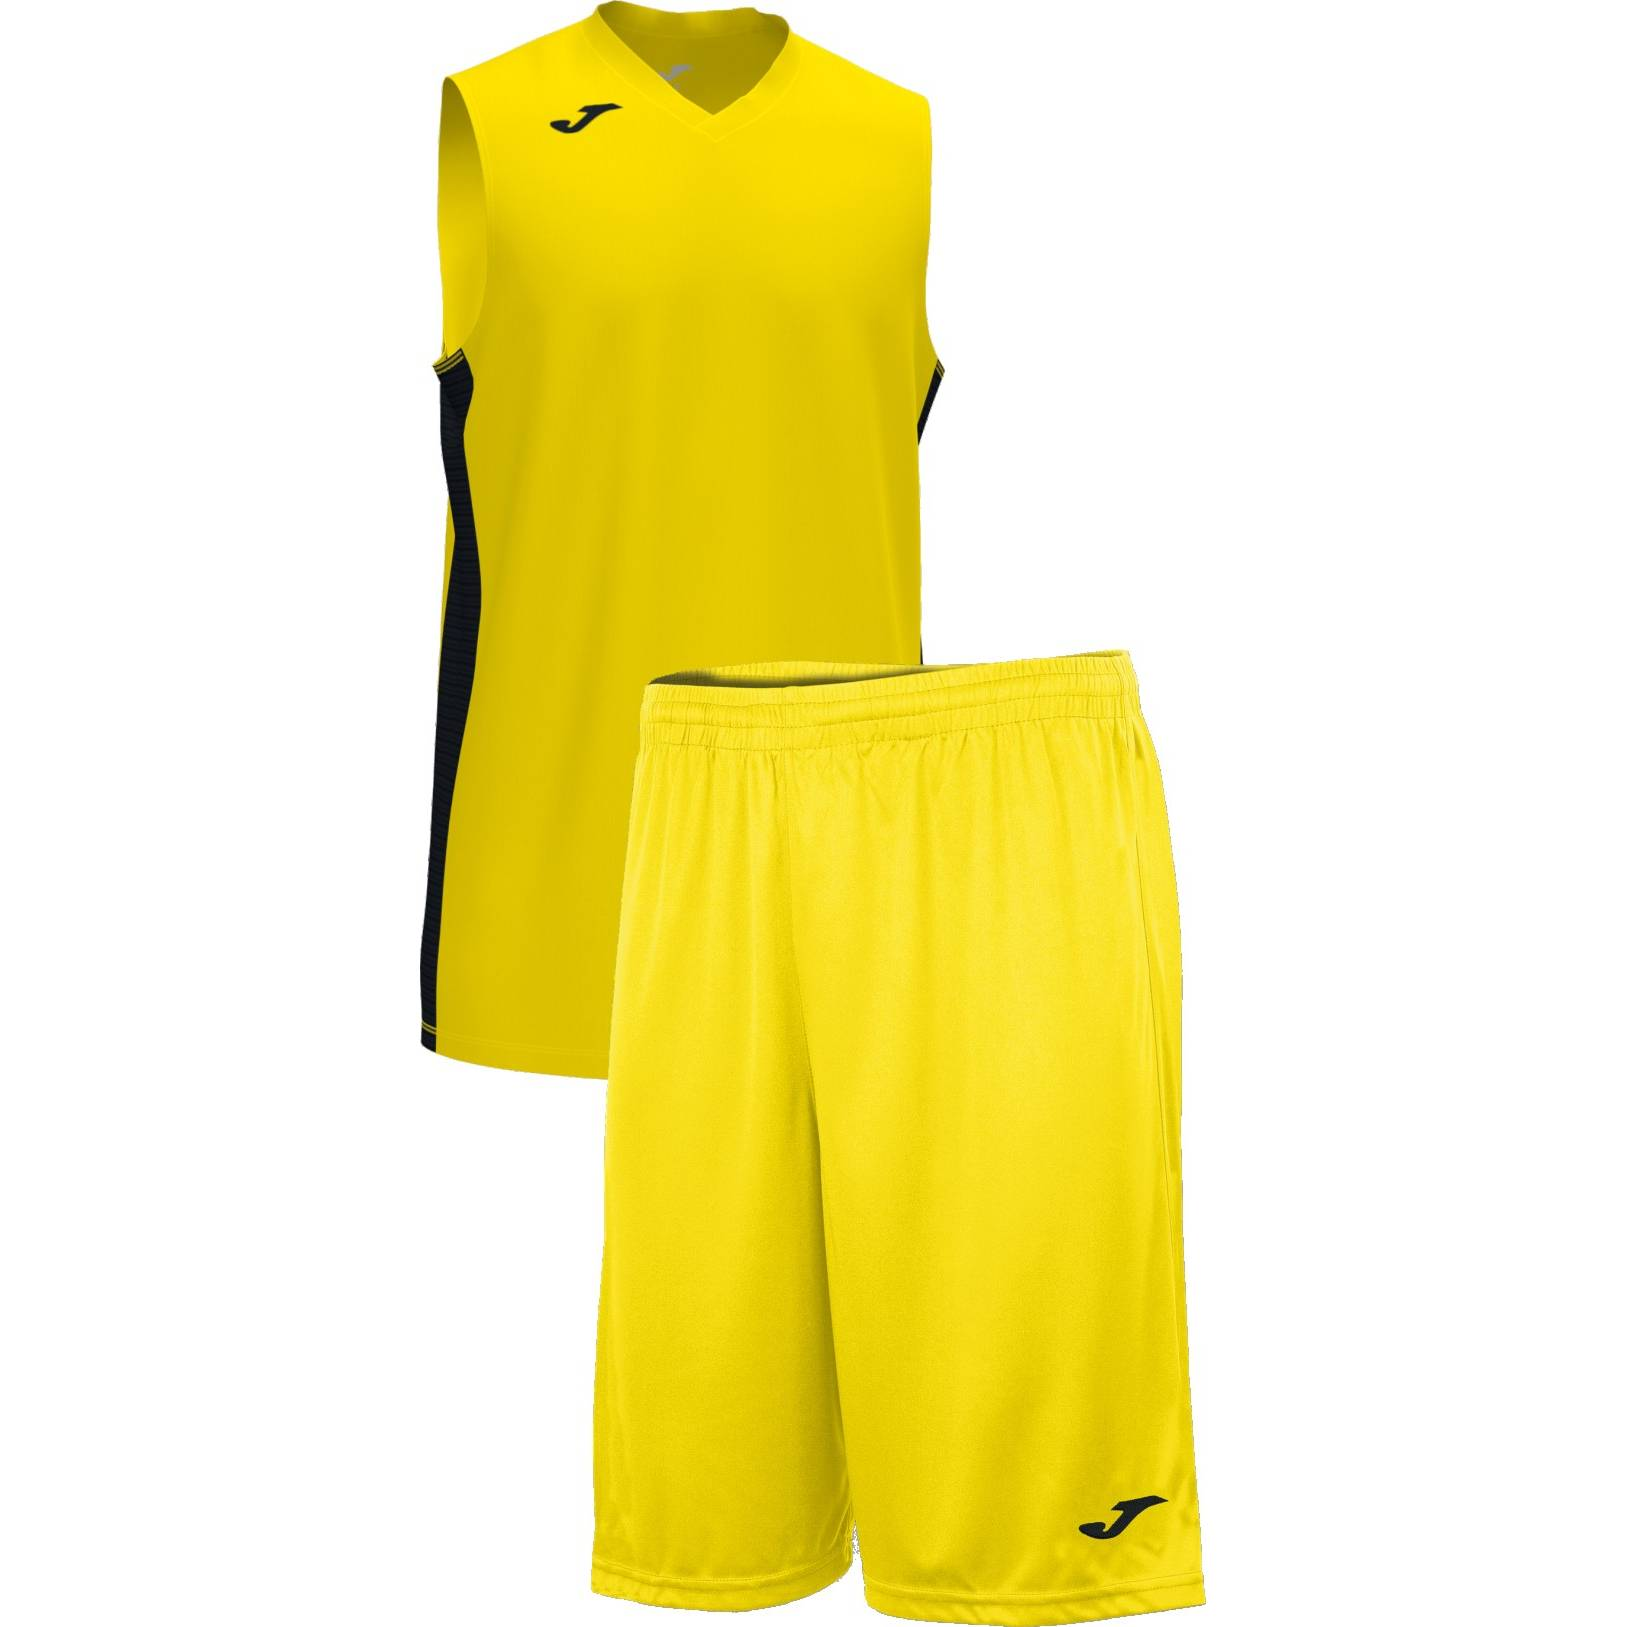 Teamwear - Joma Cancha Sleeveless  & Nobel Long Shorts Set - Yellow/Black - JO-101573-901-101648-Black